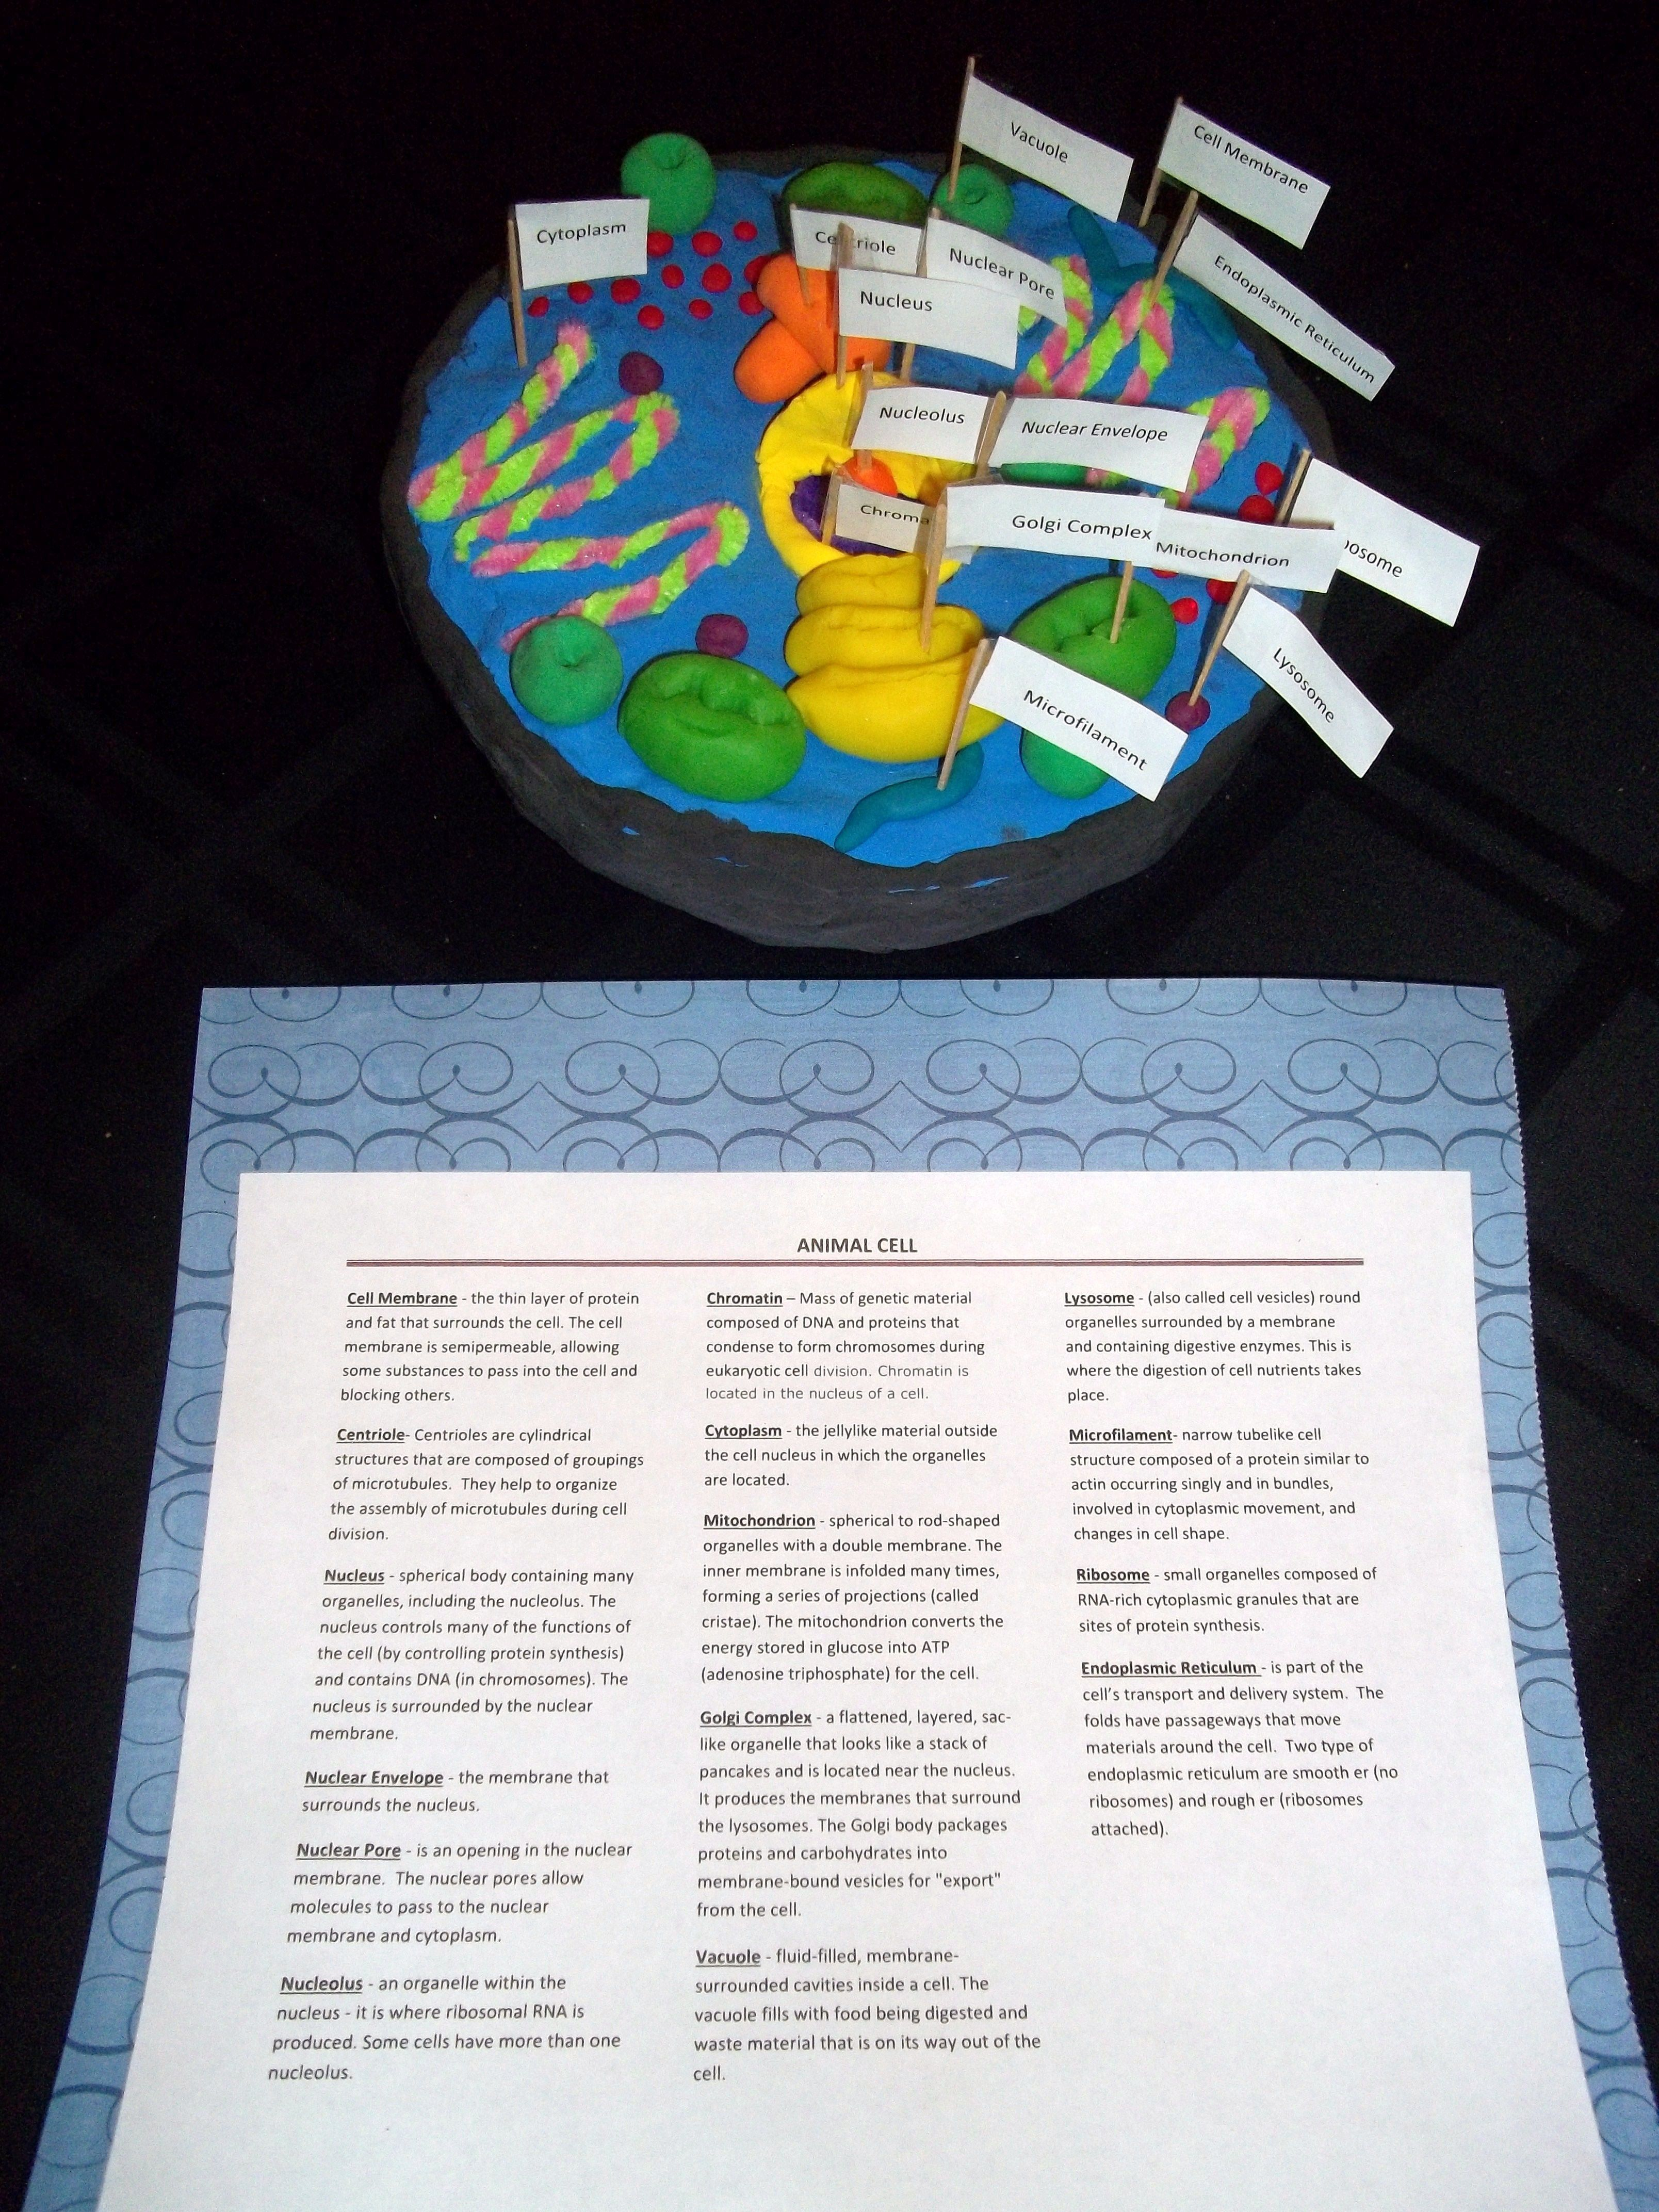 Animal cell model cake labeled